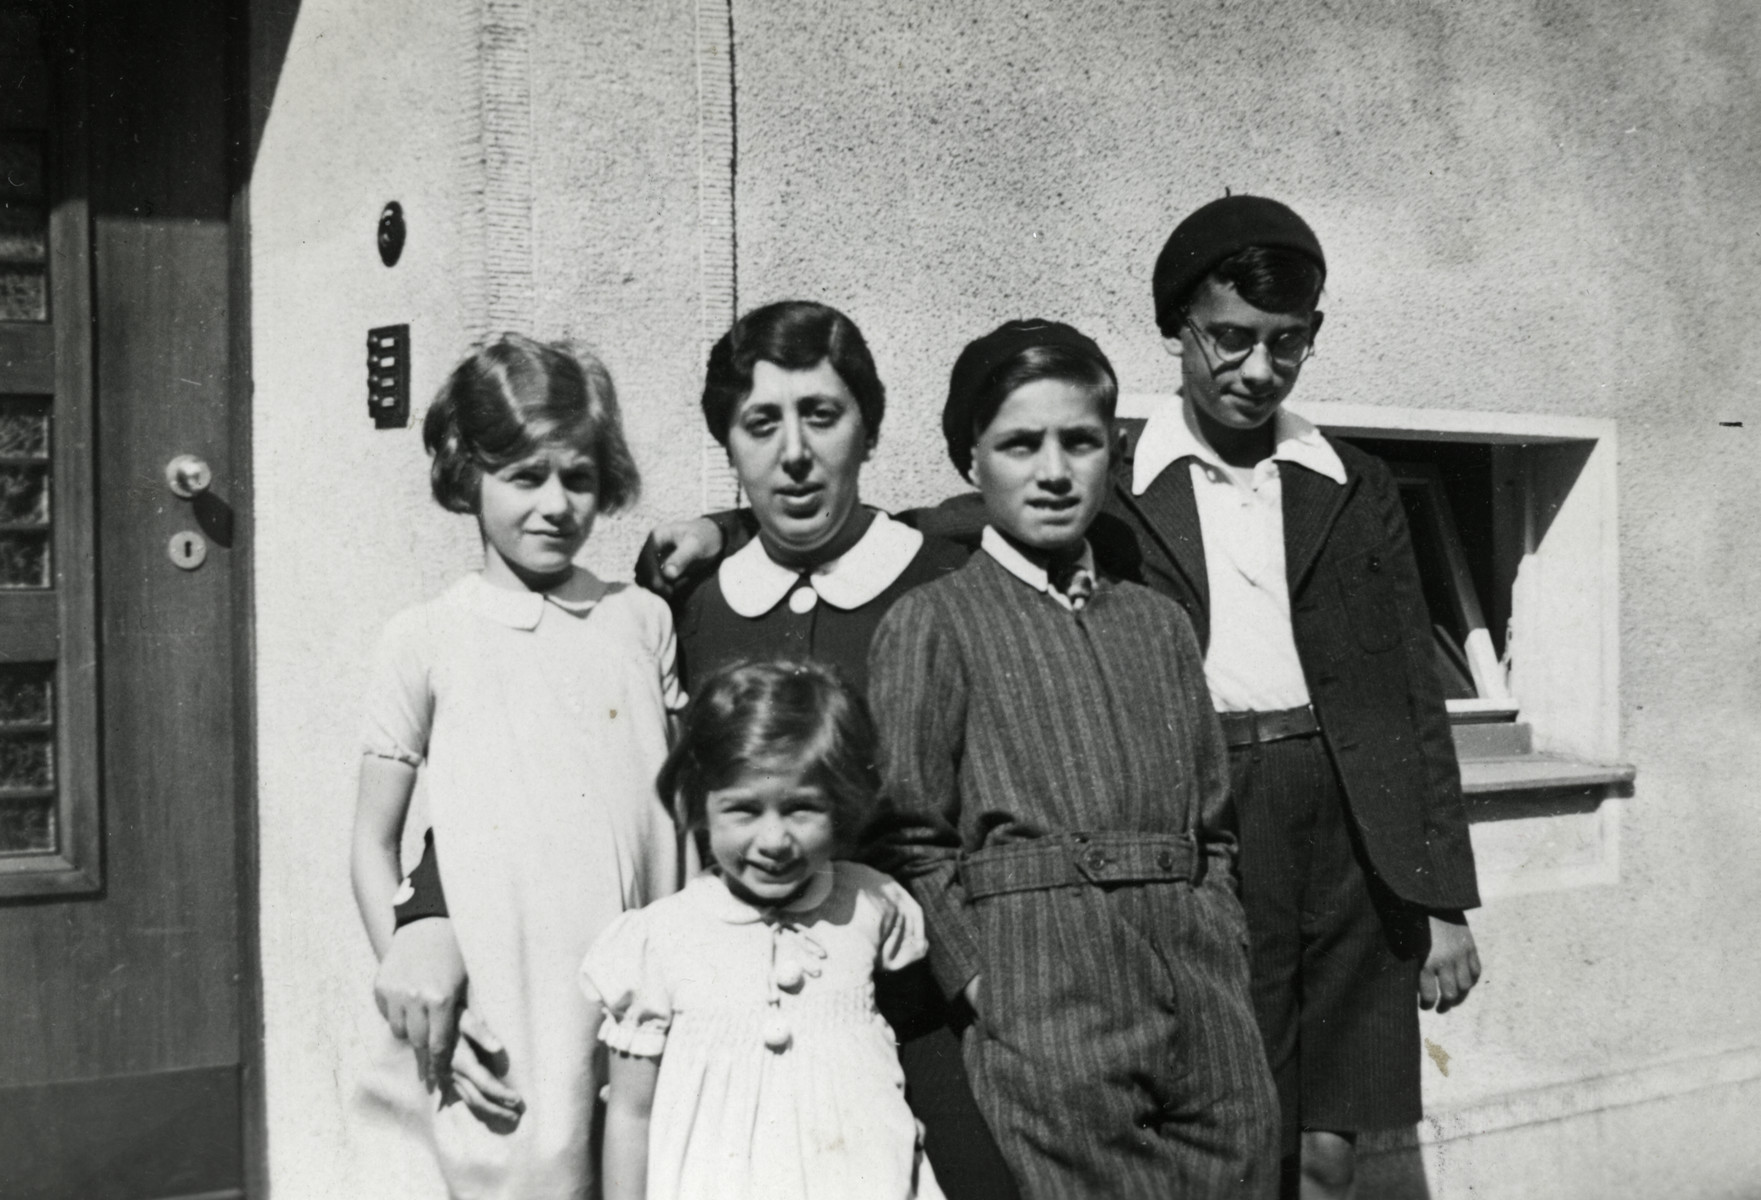 Bertha Klingman poses with four of her children Hannah, Jeannette, David, and Karl.